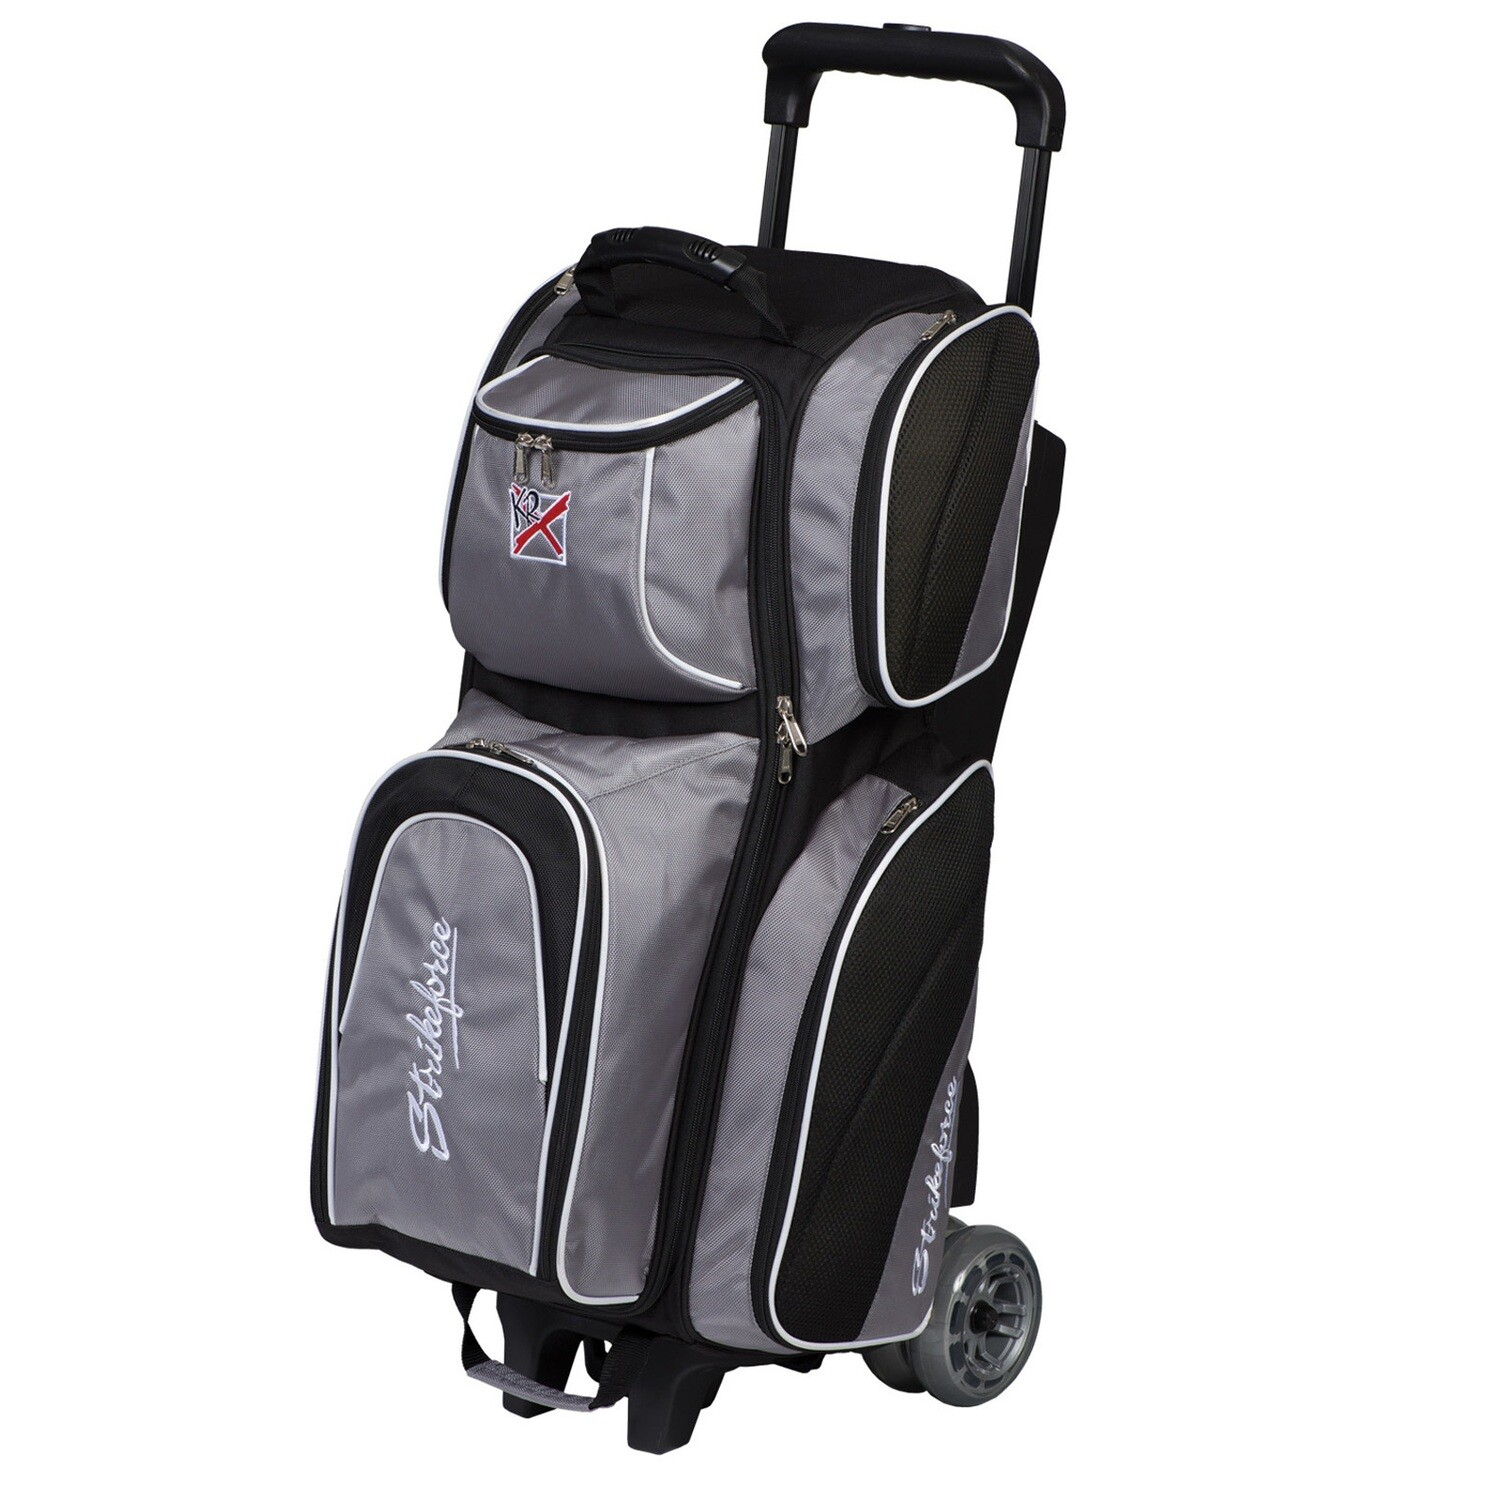 KR Strikeforce Apex 3 Ball Roller Bowling Bag